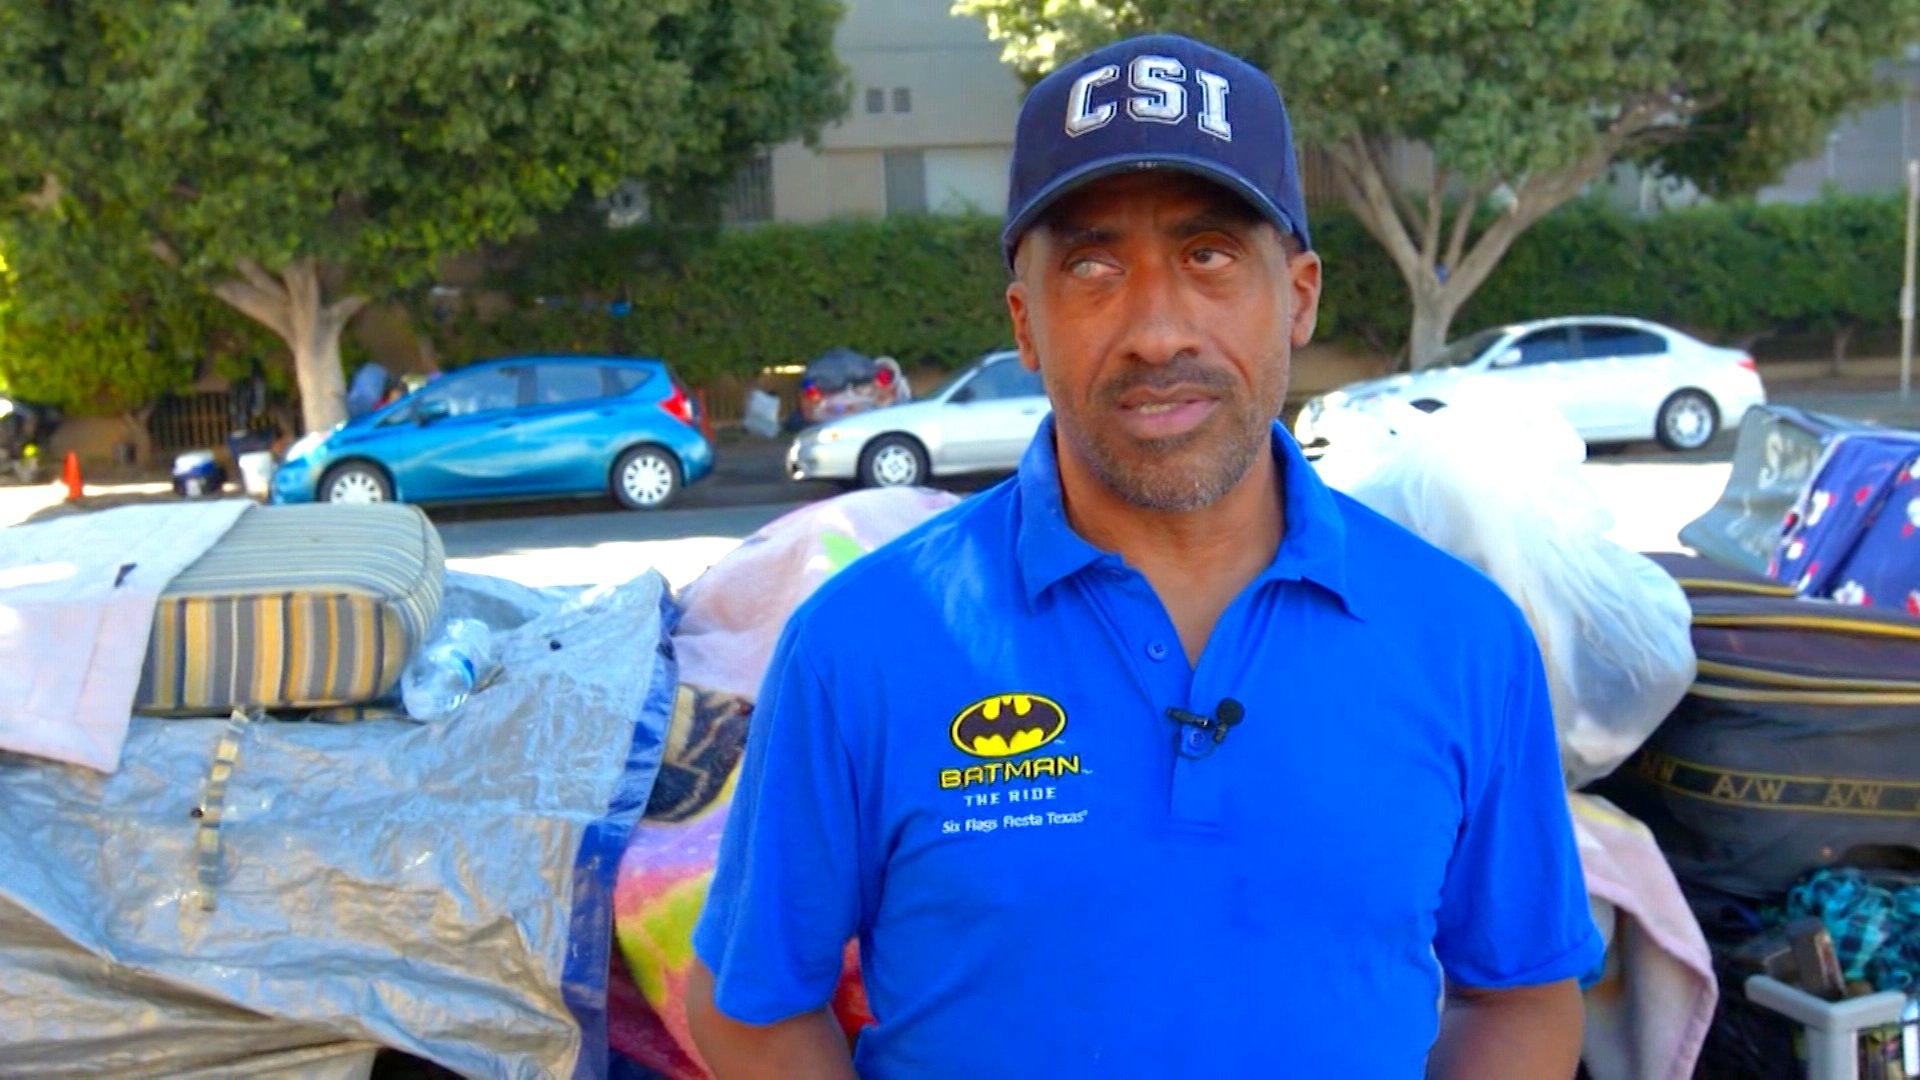 He was a Yale graduate, Wall Street banker and entrepreneur. Today he's homeless in Los Angeles